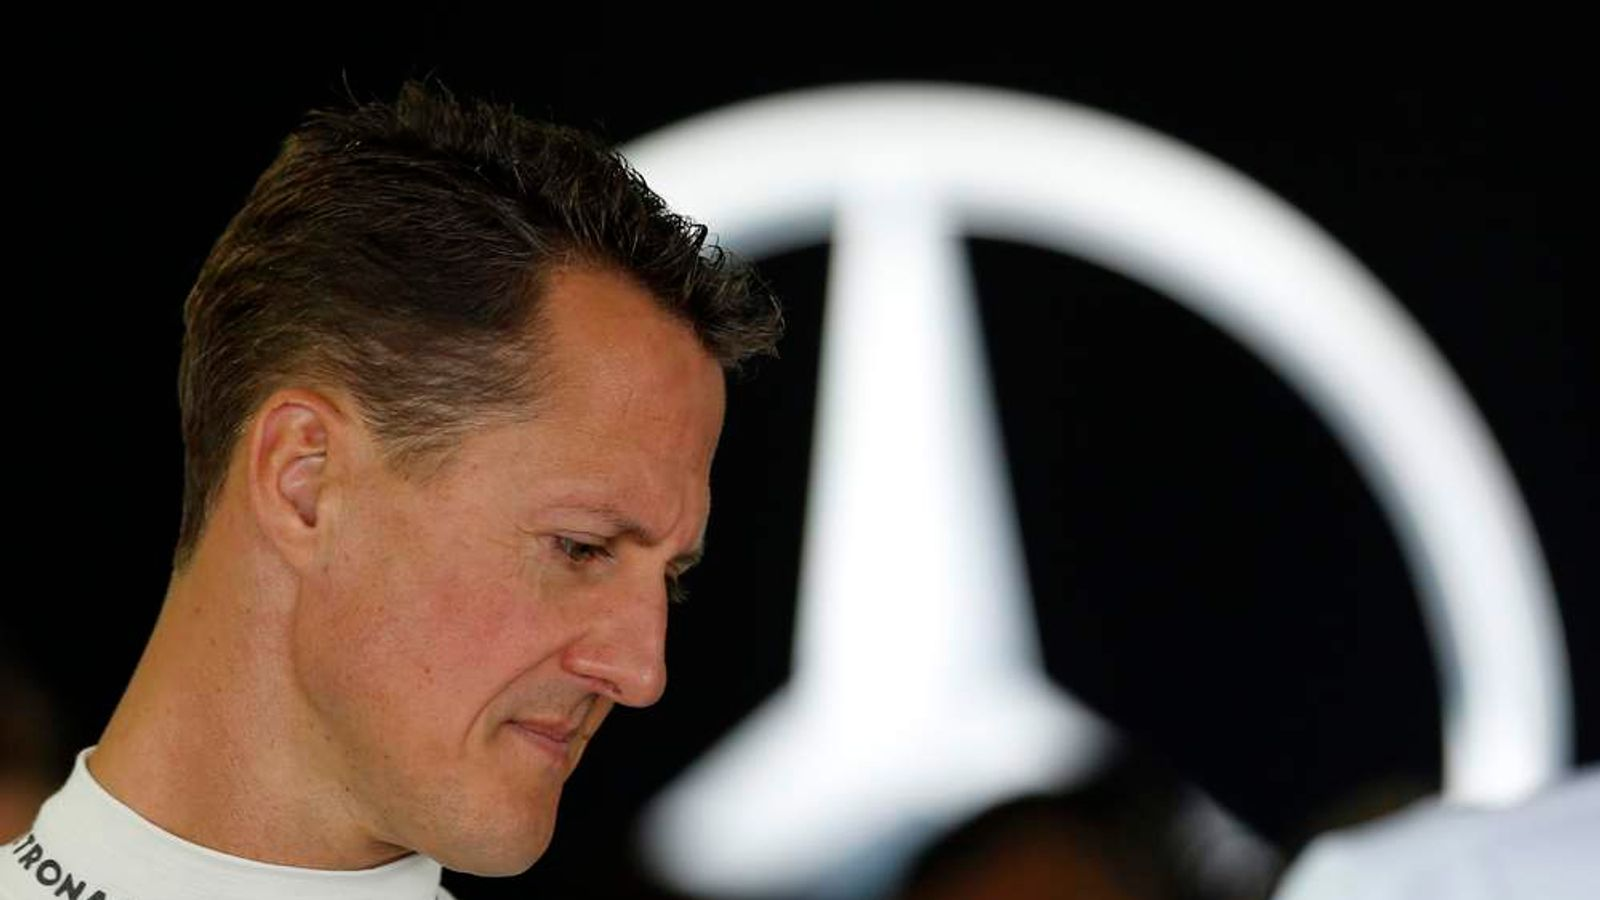 Mercedes Formula One driver Schumacher stands inside his team garage during the first practice session of the Japanese F1 Grand Prix at the Suzuka circuit